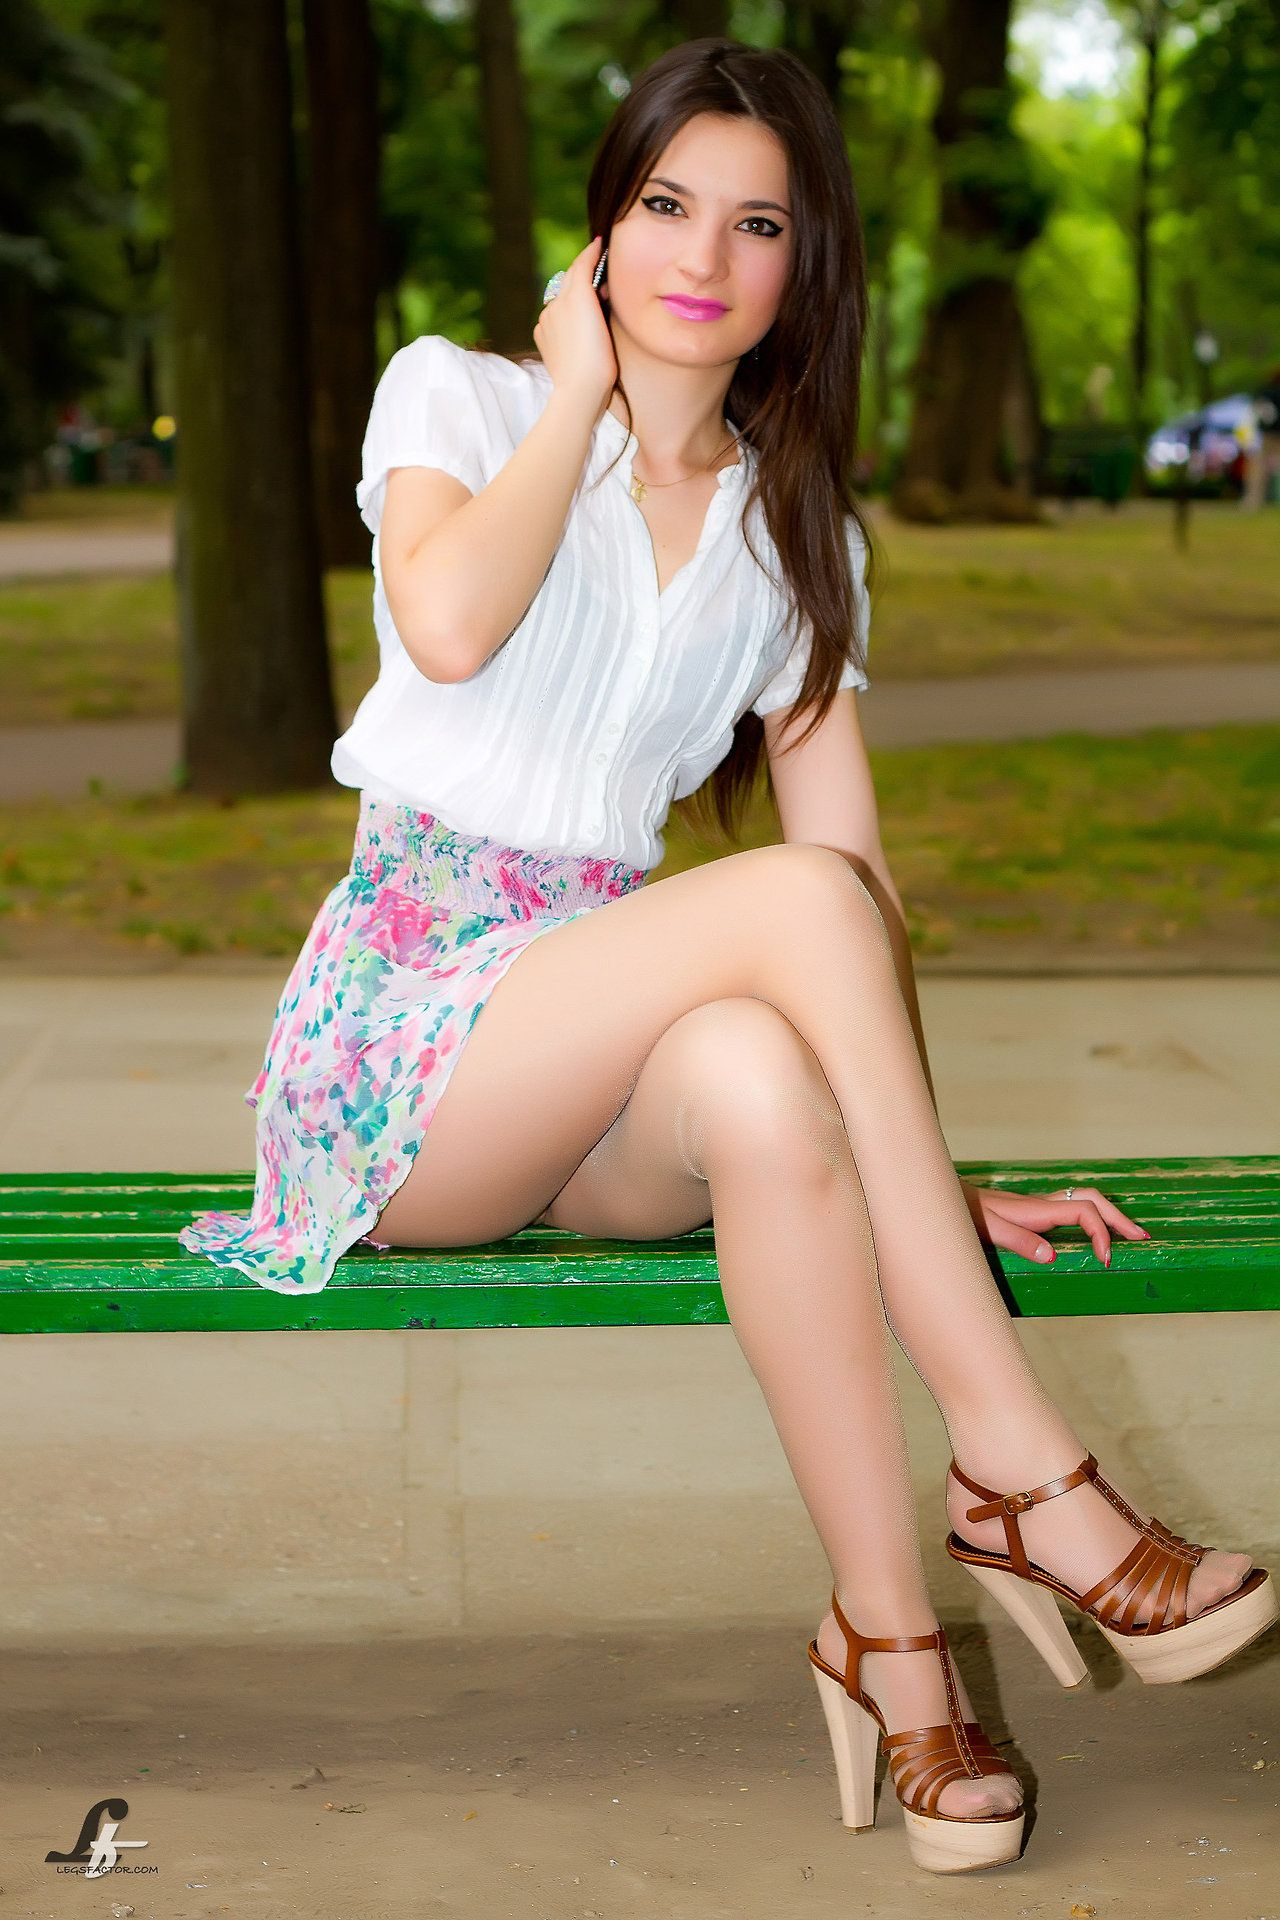 agree, veronika blows dick for cash phrase simply matchless